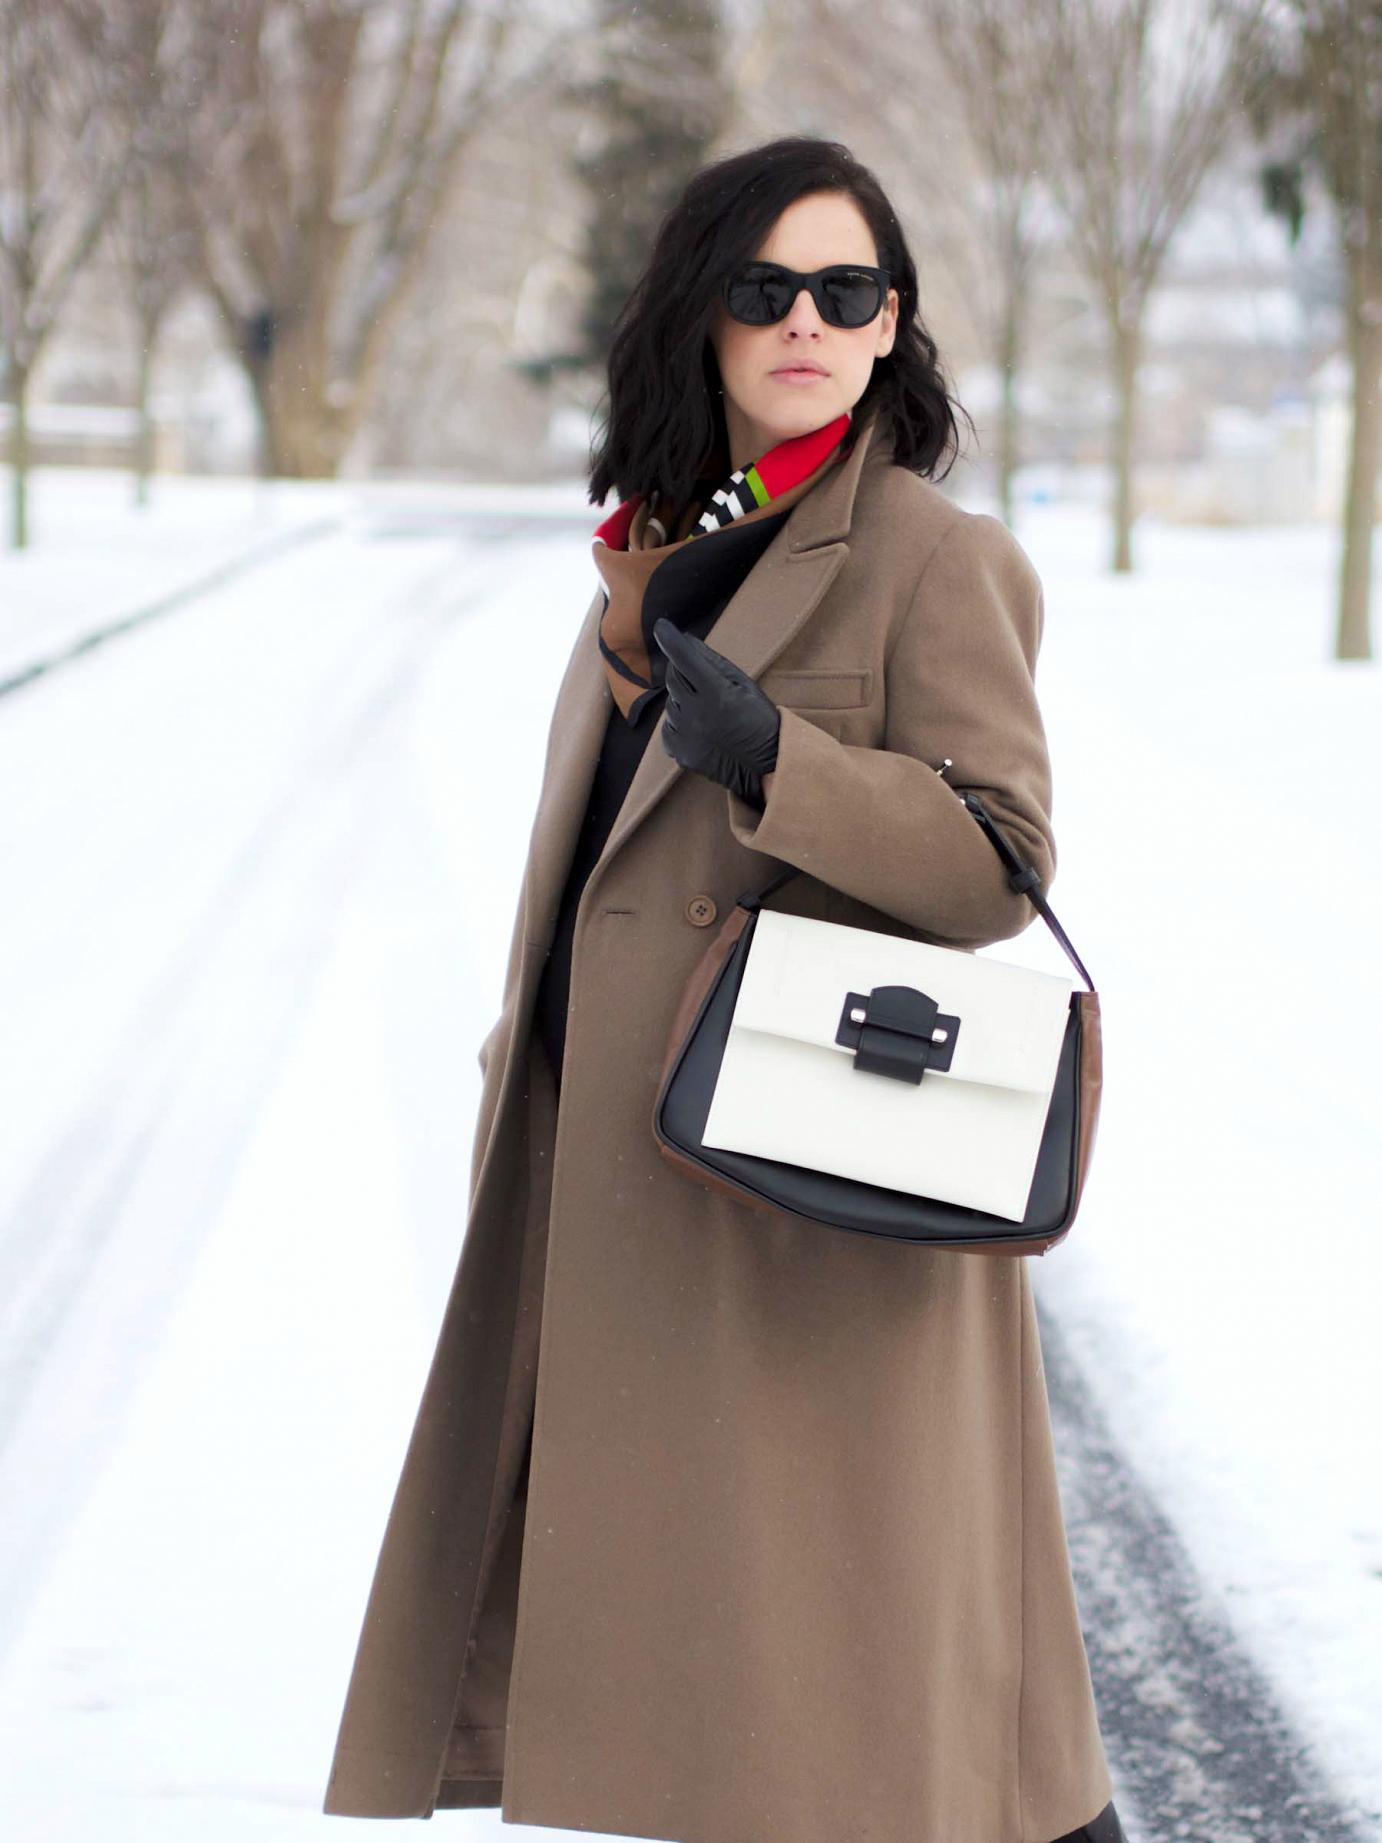 bittersweet colours, street style, winter street style, camel coat, menswear inspired, minimalism, dior scarf, vintage, stan smith adidas, sneakers trend, maternity style,